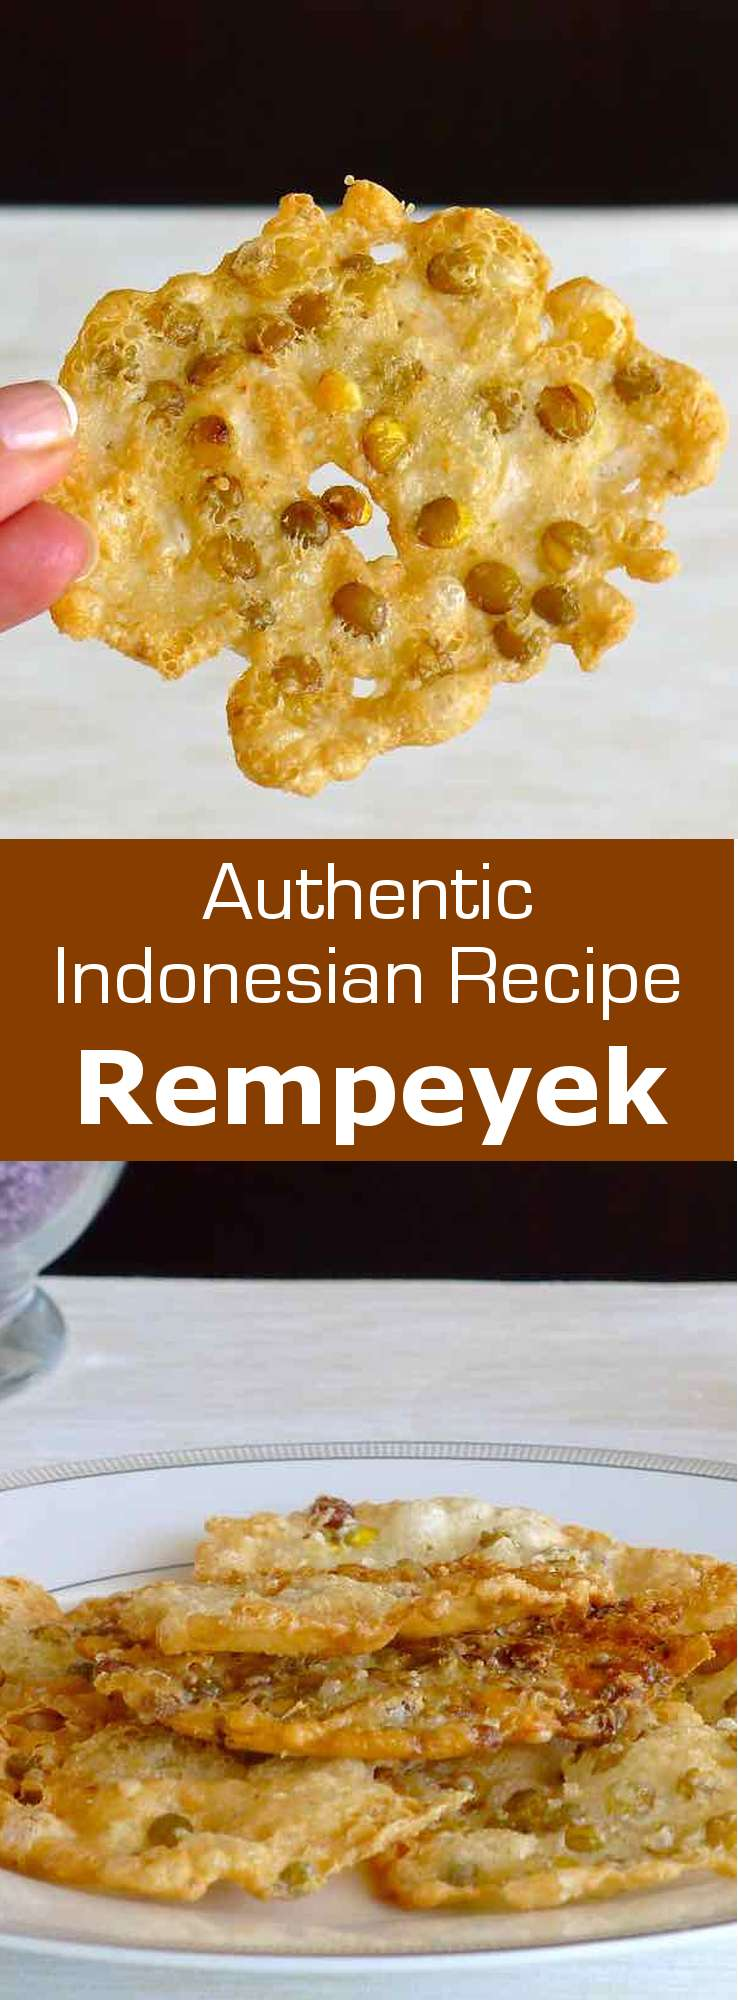 Indonesian rempeyek come in several versions: teri (dried anchovies), rebon (small shrimp), ebi (dried shrimp), kacang (peanuts) or lentils. #Indonesia #196flavors